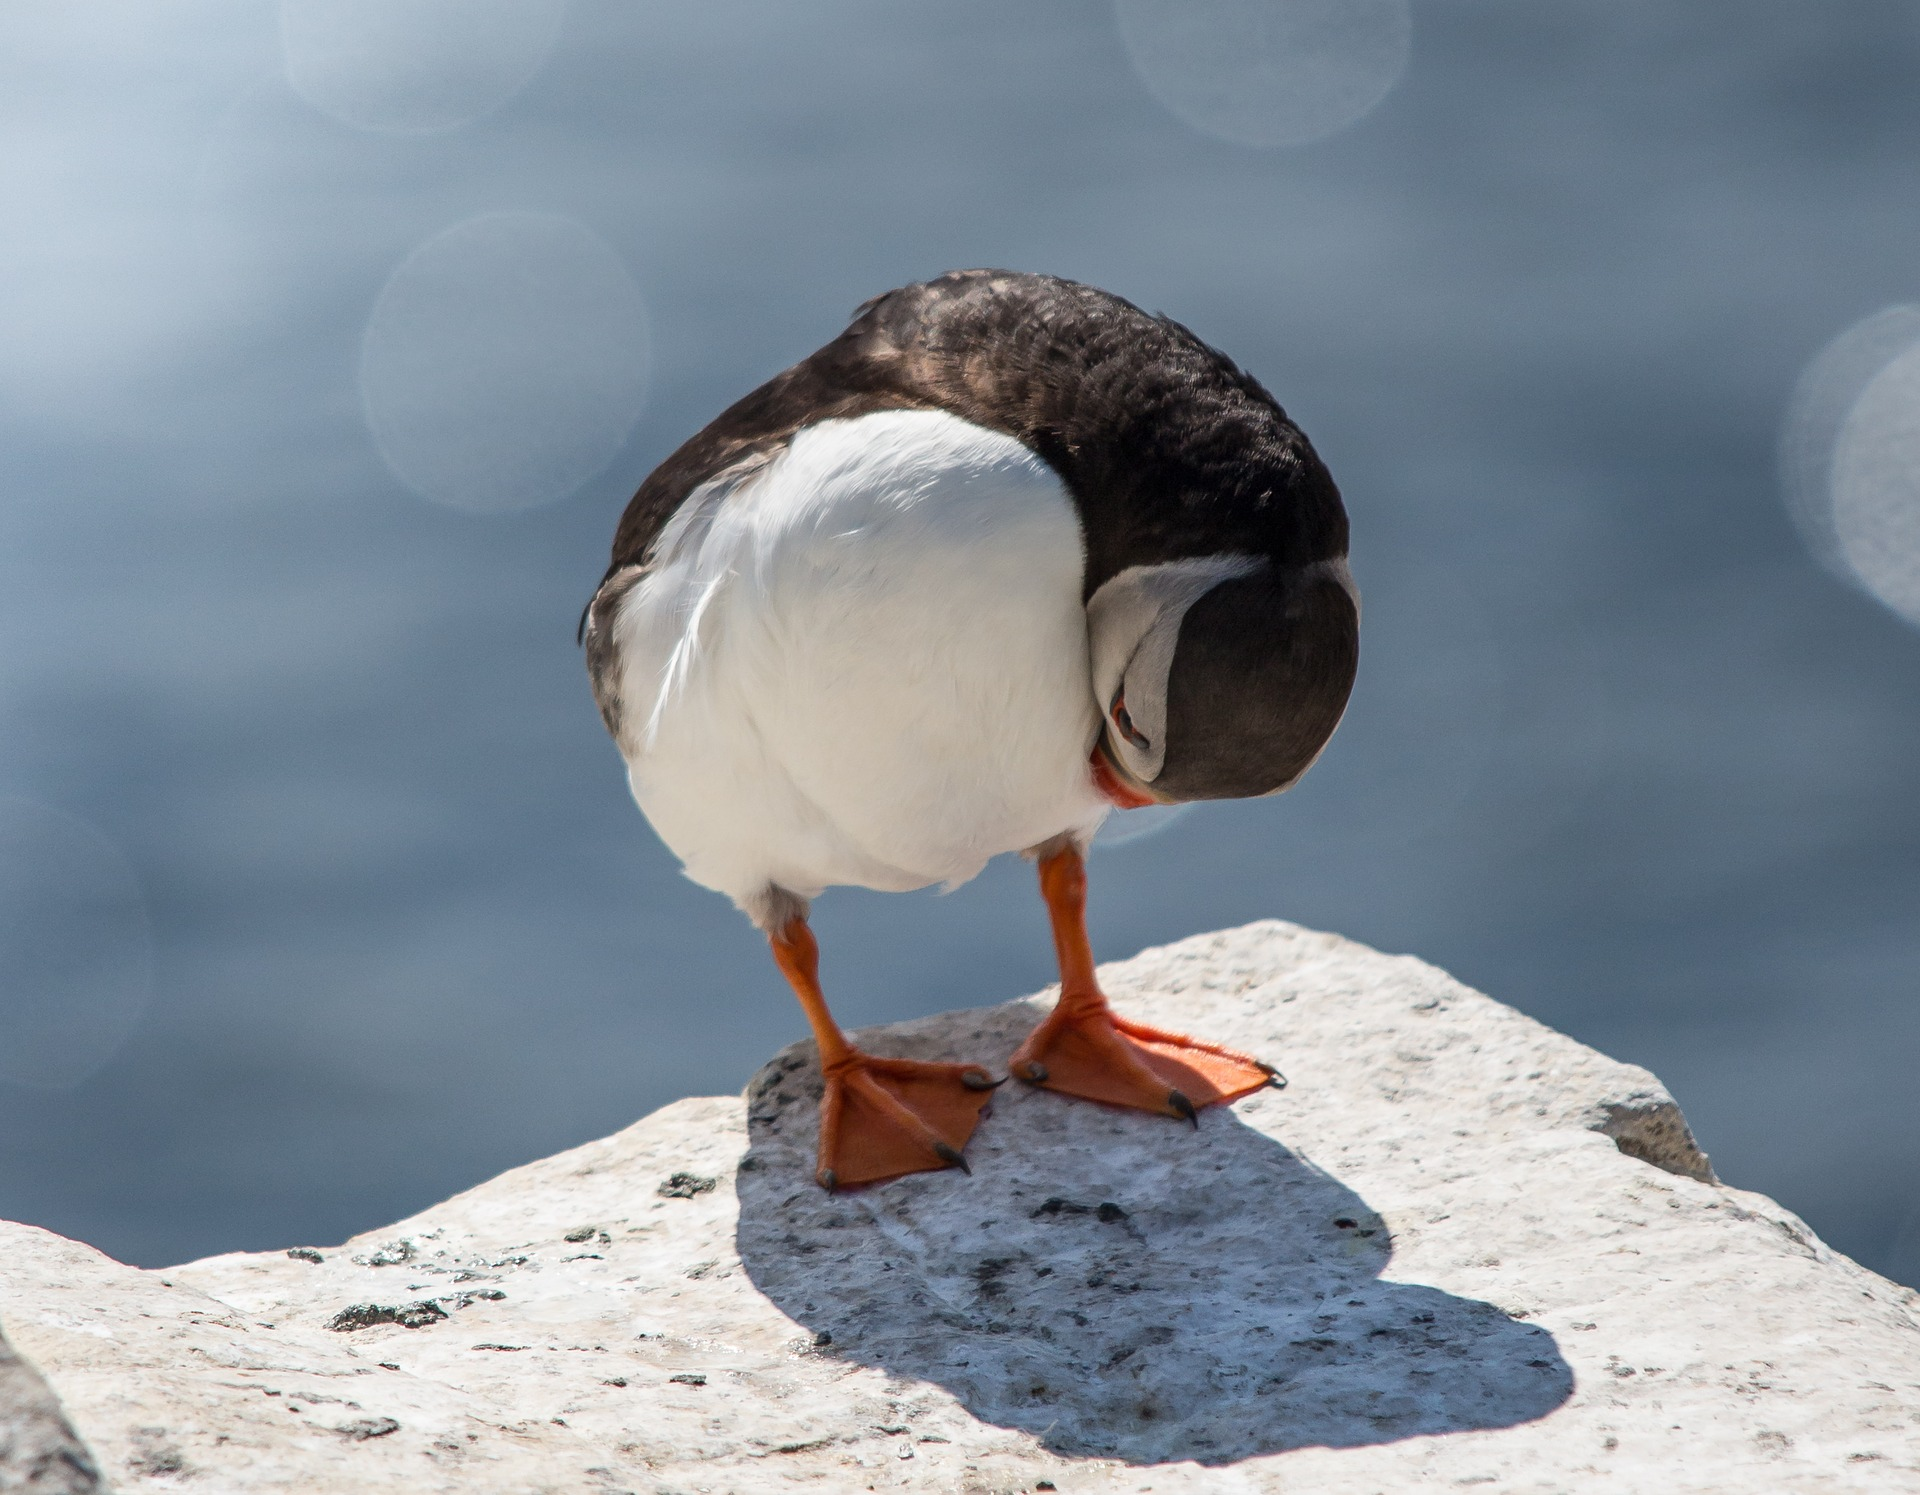 Icelandic puffin on a rock